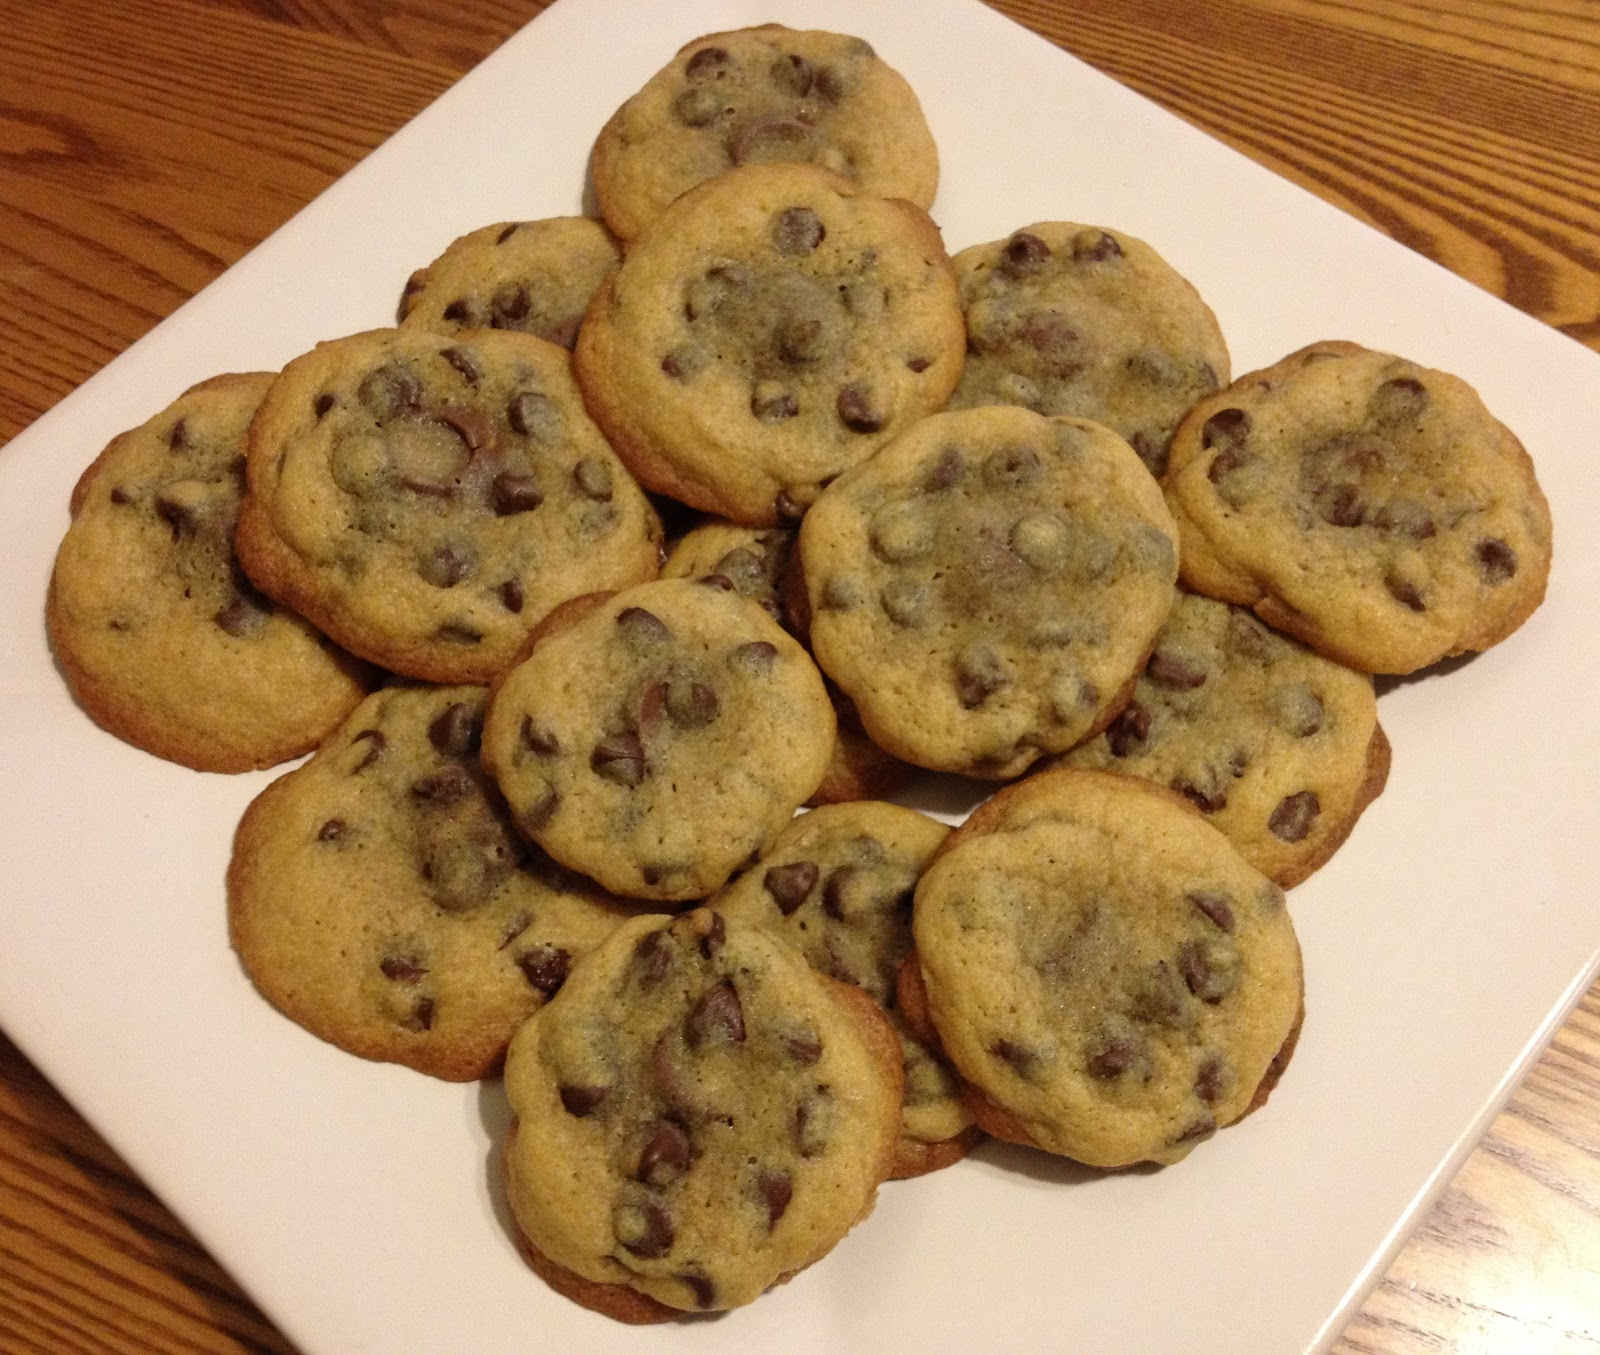 Chocolate Chip Cookies On A Plate Chocolate chip cookies stuffed